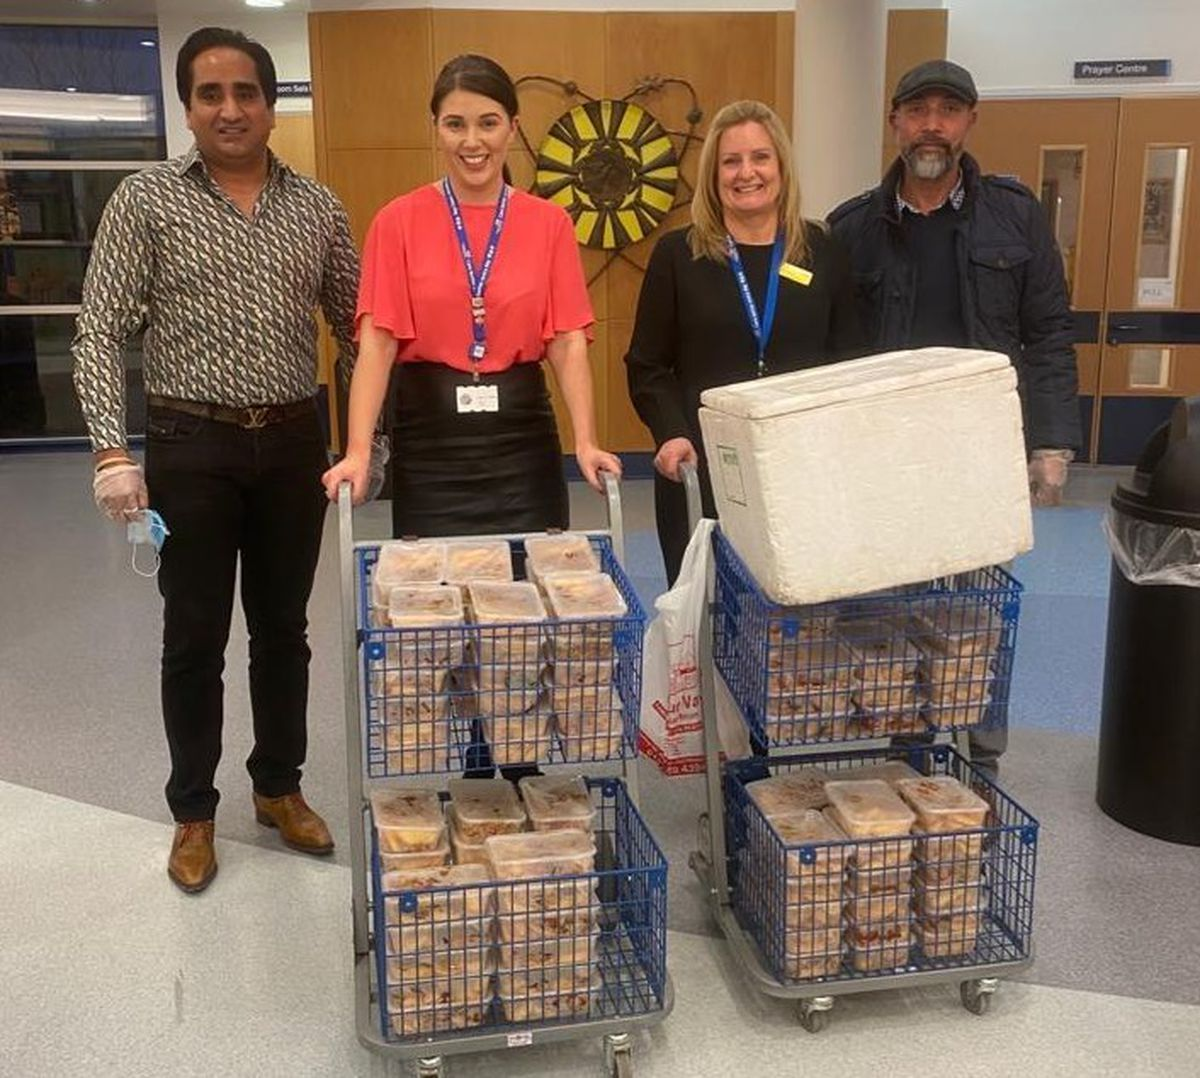 The Four Ways pub and Island Inn gave 115 takeaway meals to Russells Hall Hospital